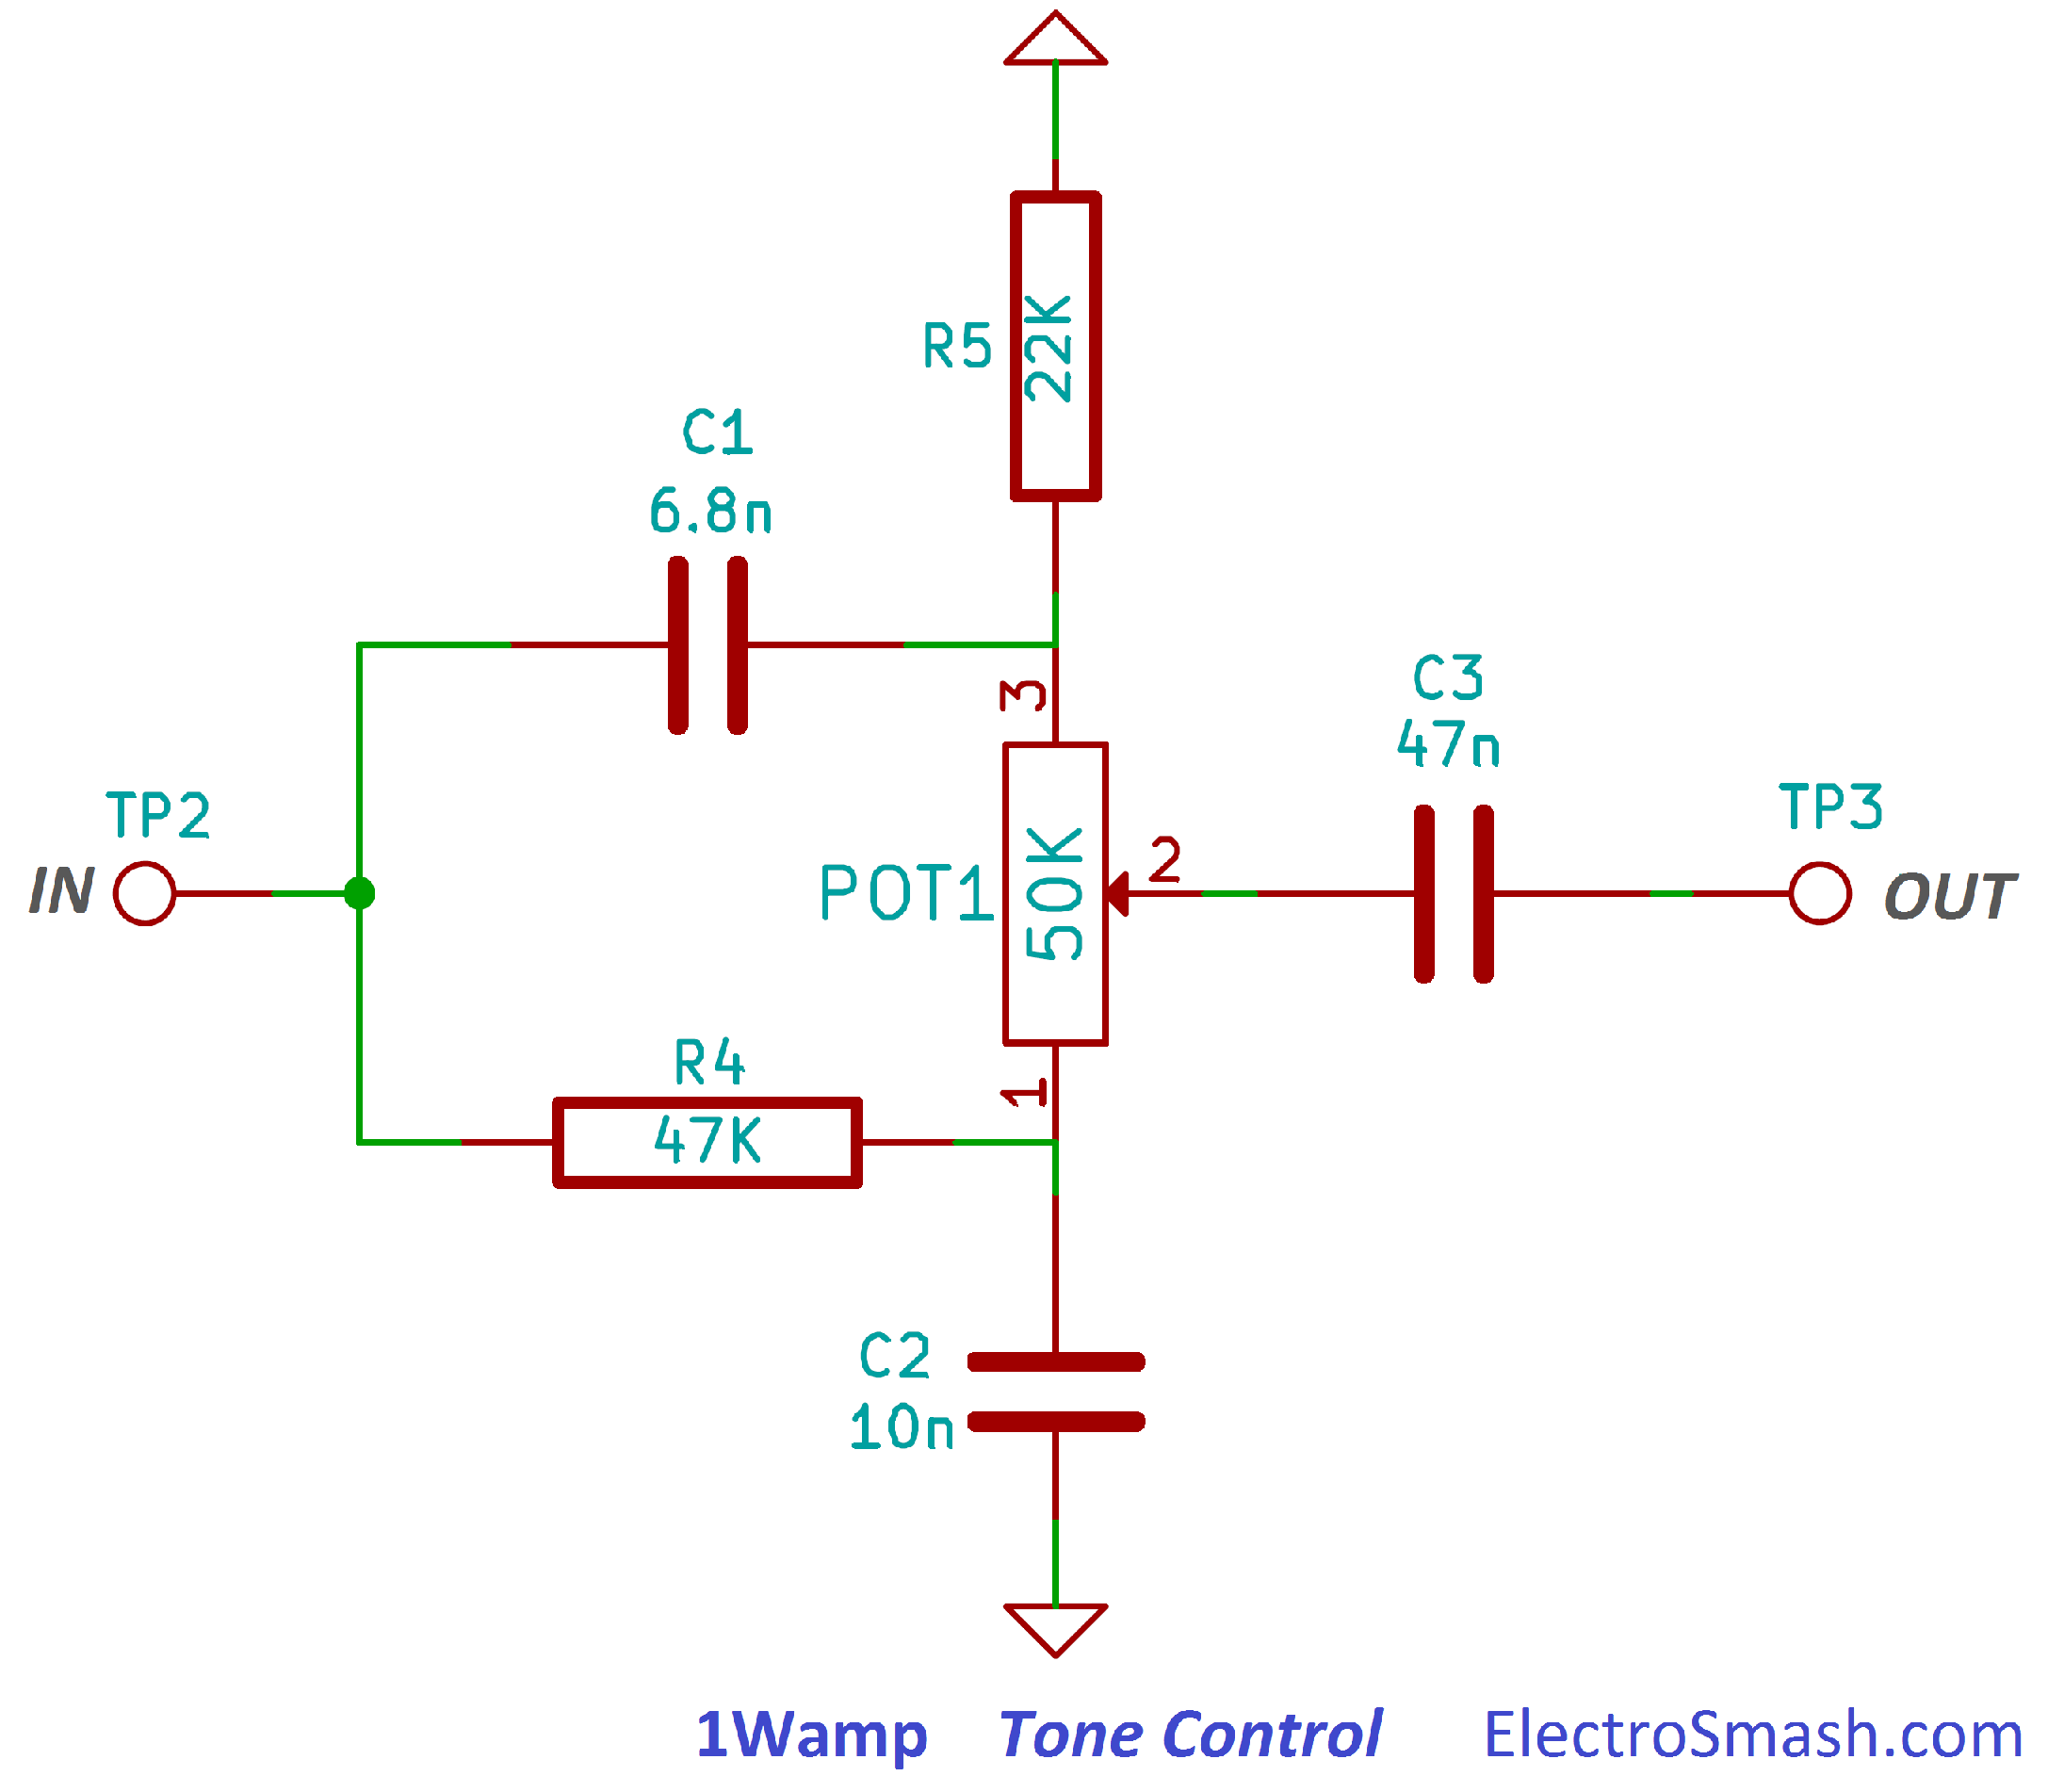 small resolution of  1wamp tone control resize 665 2c582 wiring diagram 2002 gl1800 gl1200